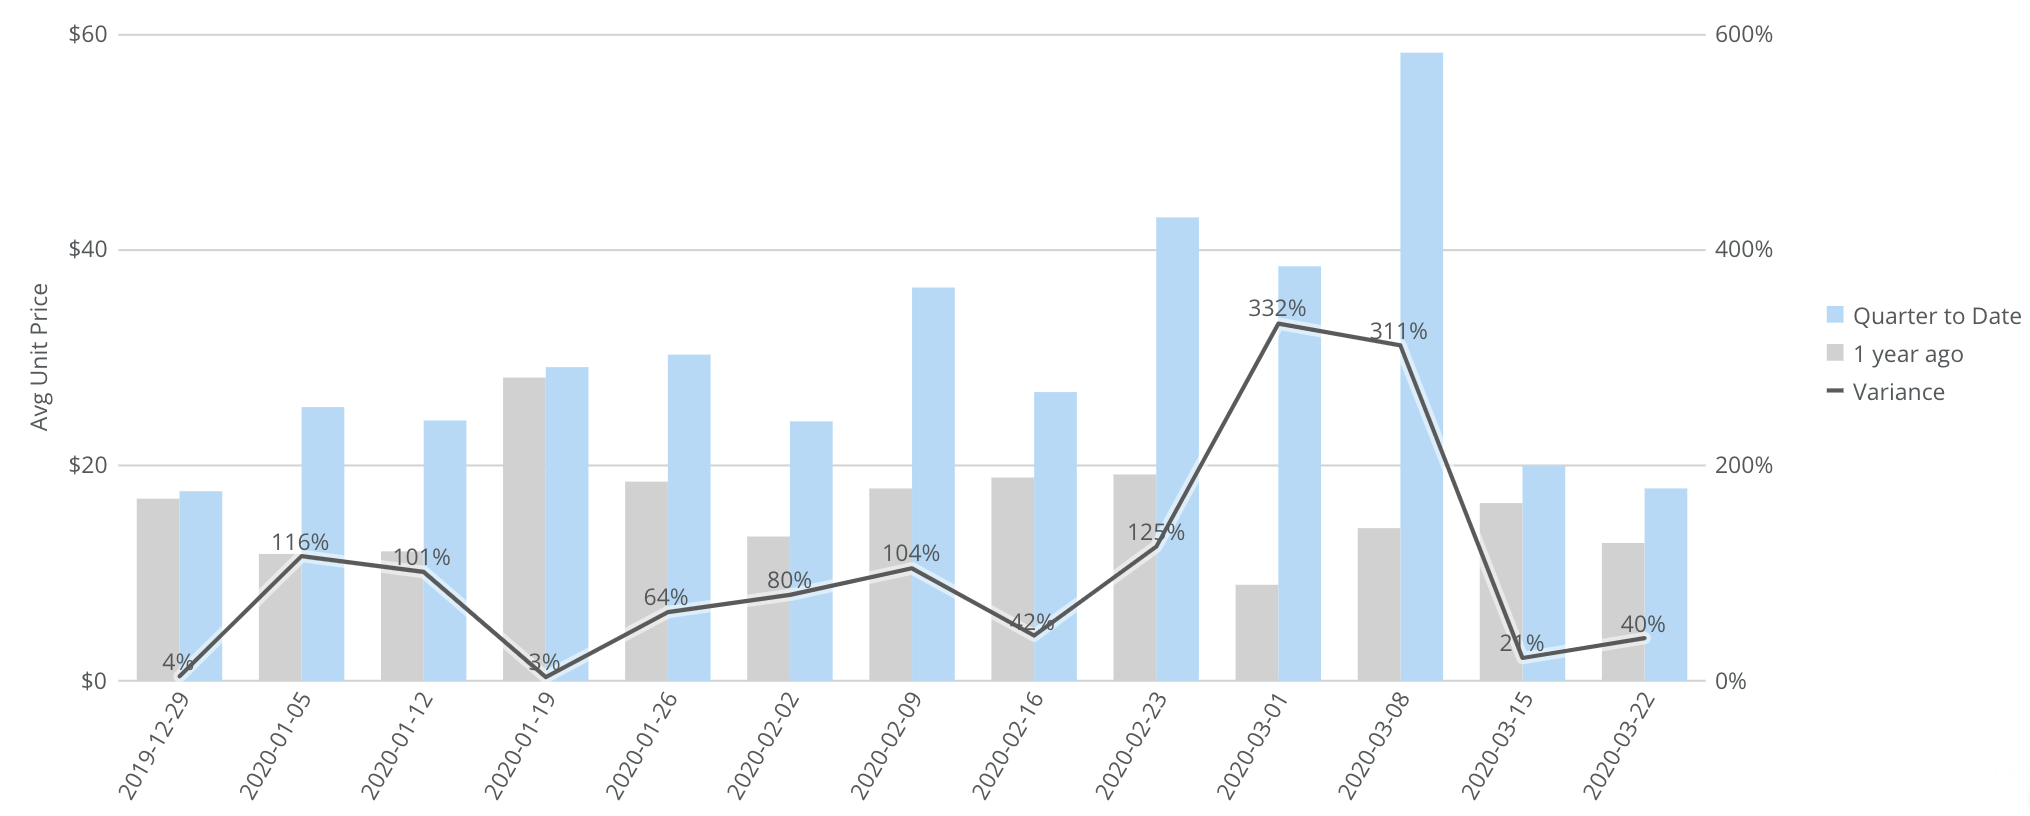 graph showing ecommerce price trends in California during coronavirus pandemic